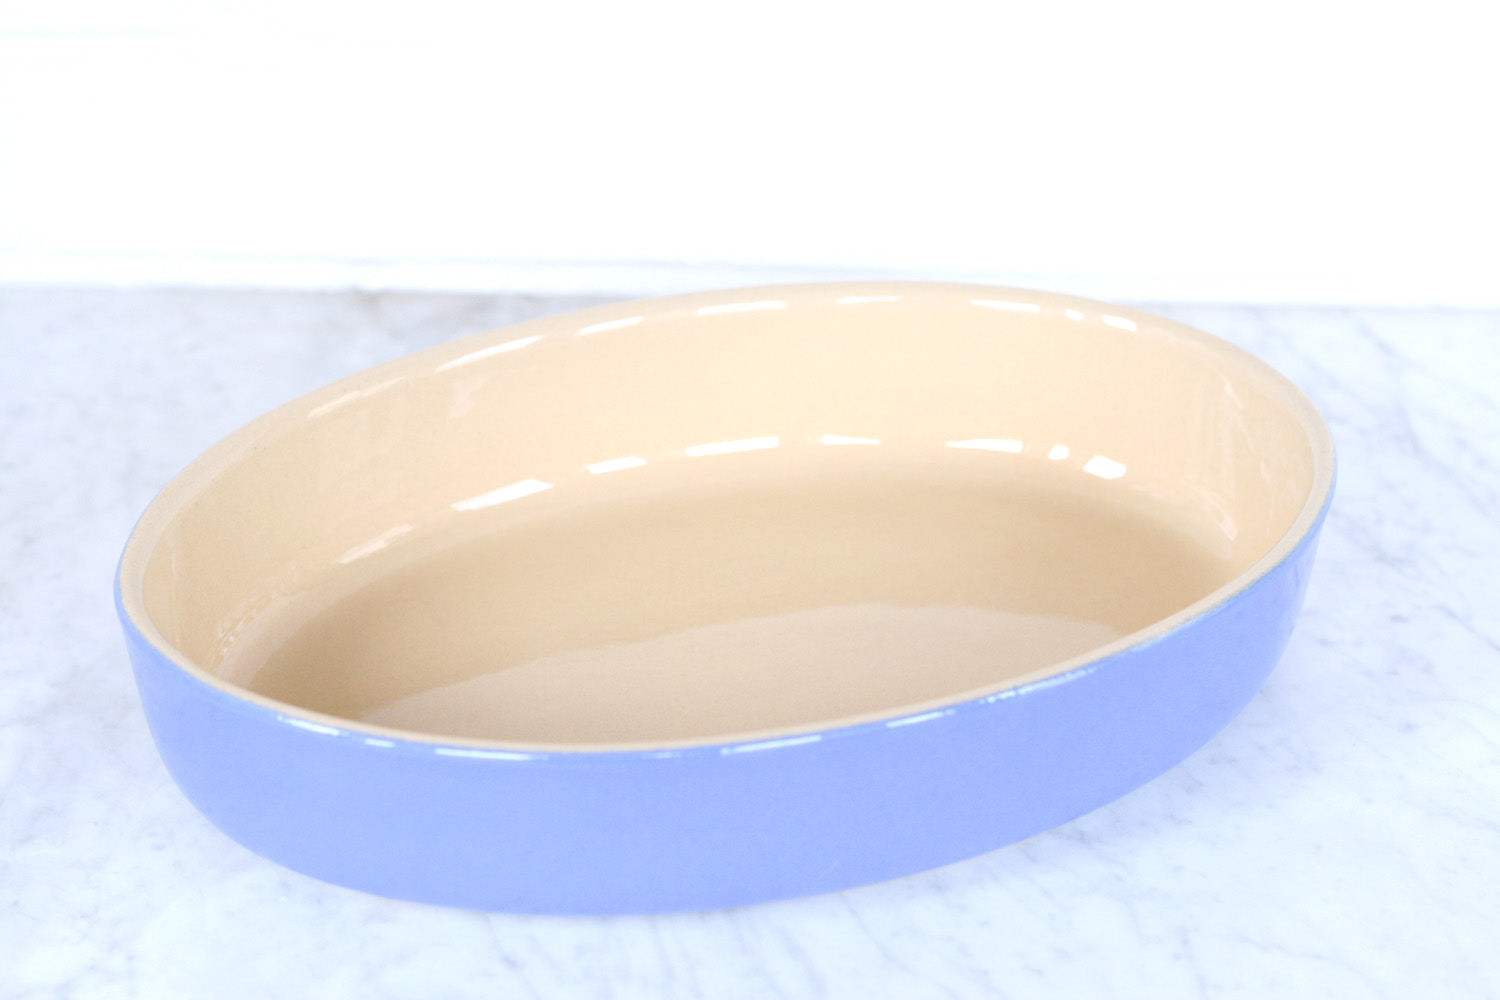 Poterie Renault Oval Baking Dish Provence Blue